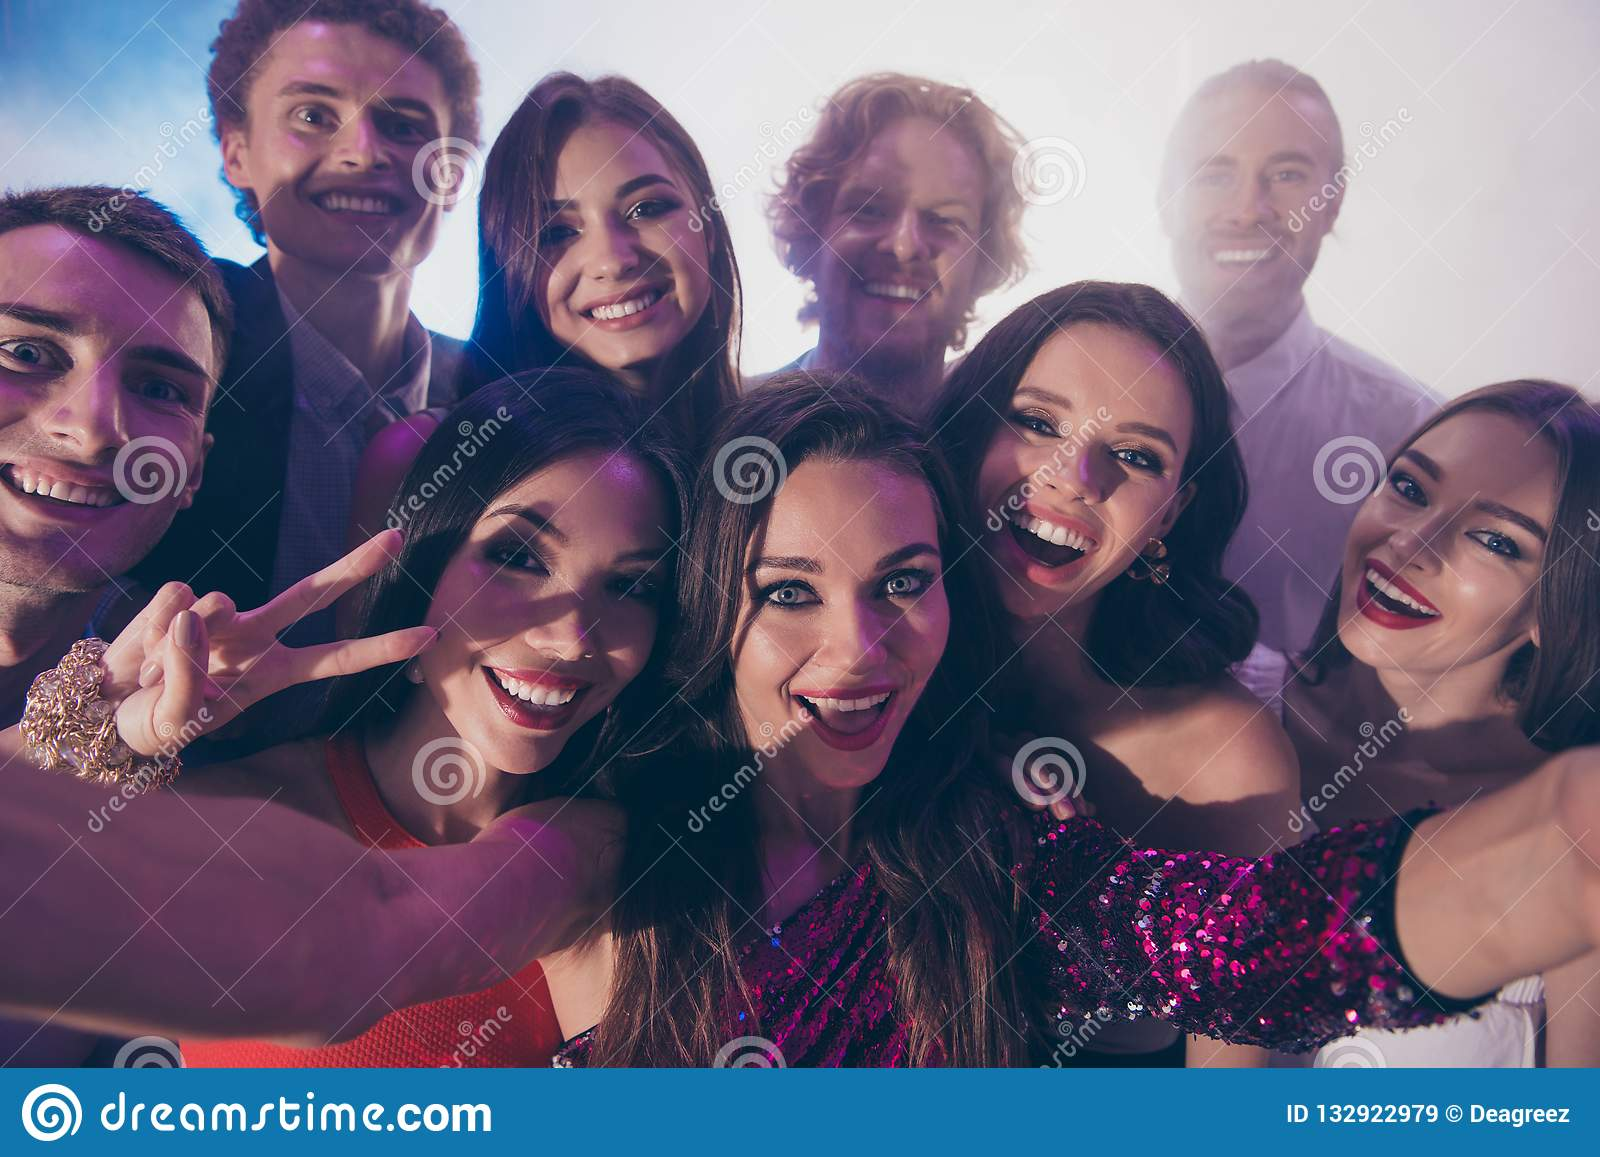 Low above angle top view close up photo portrait of persons hug